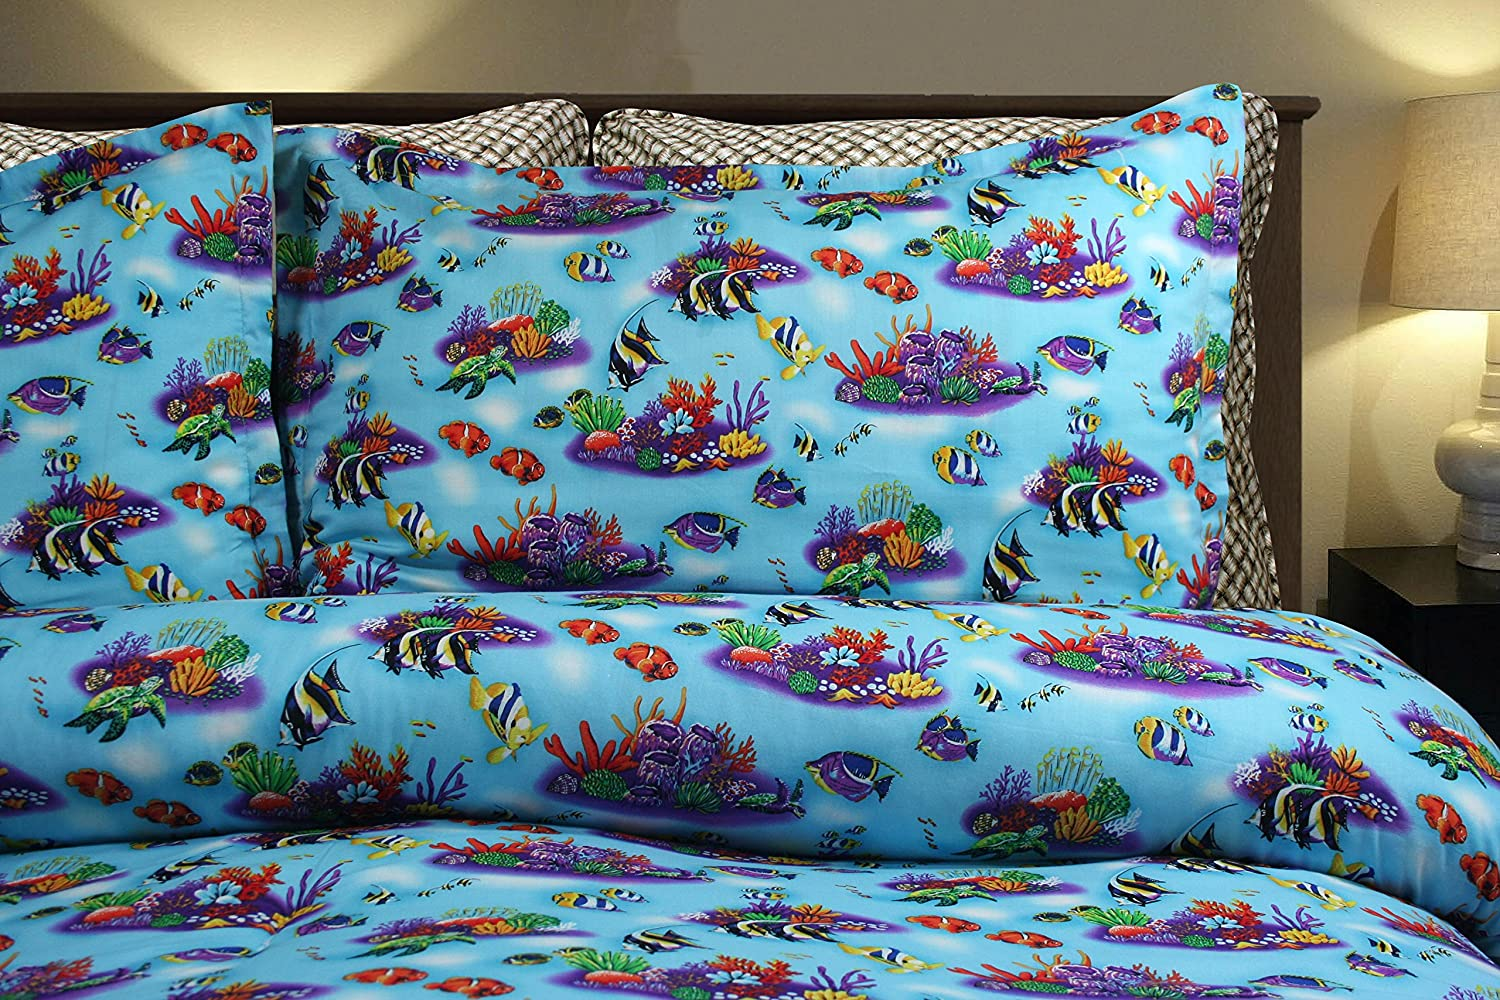 Fishing Under the Sea Queen / Full Bedding Set by Dean Miller